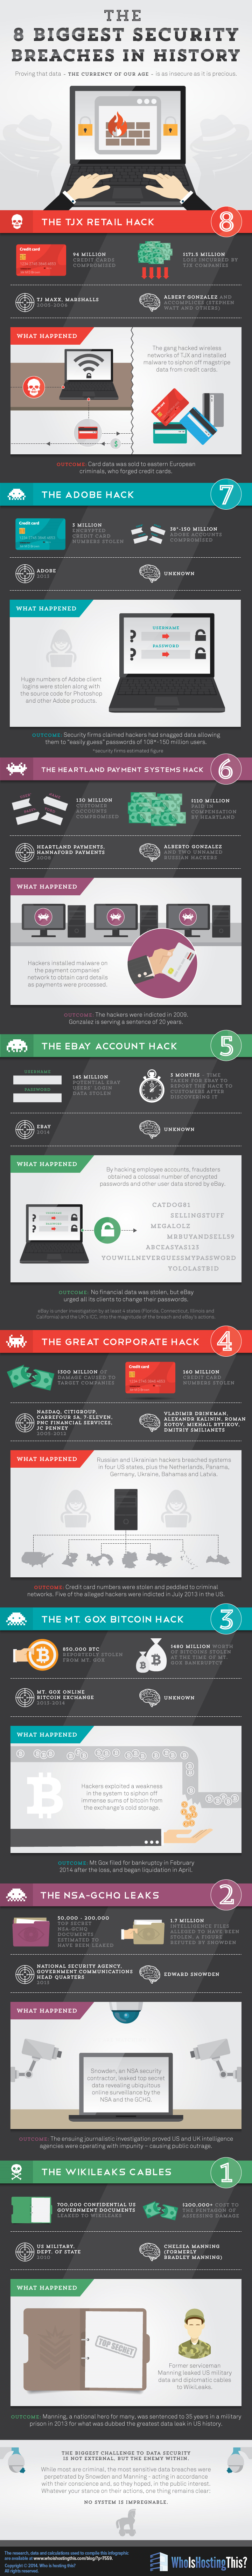 biggest-security-breaches-in-history